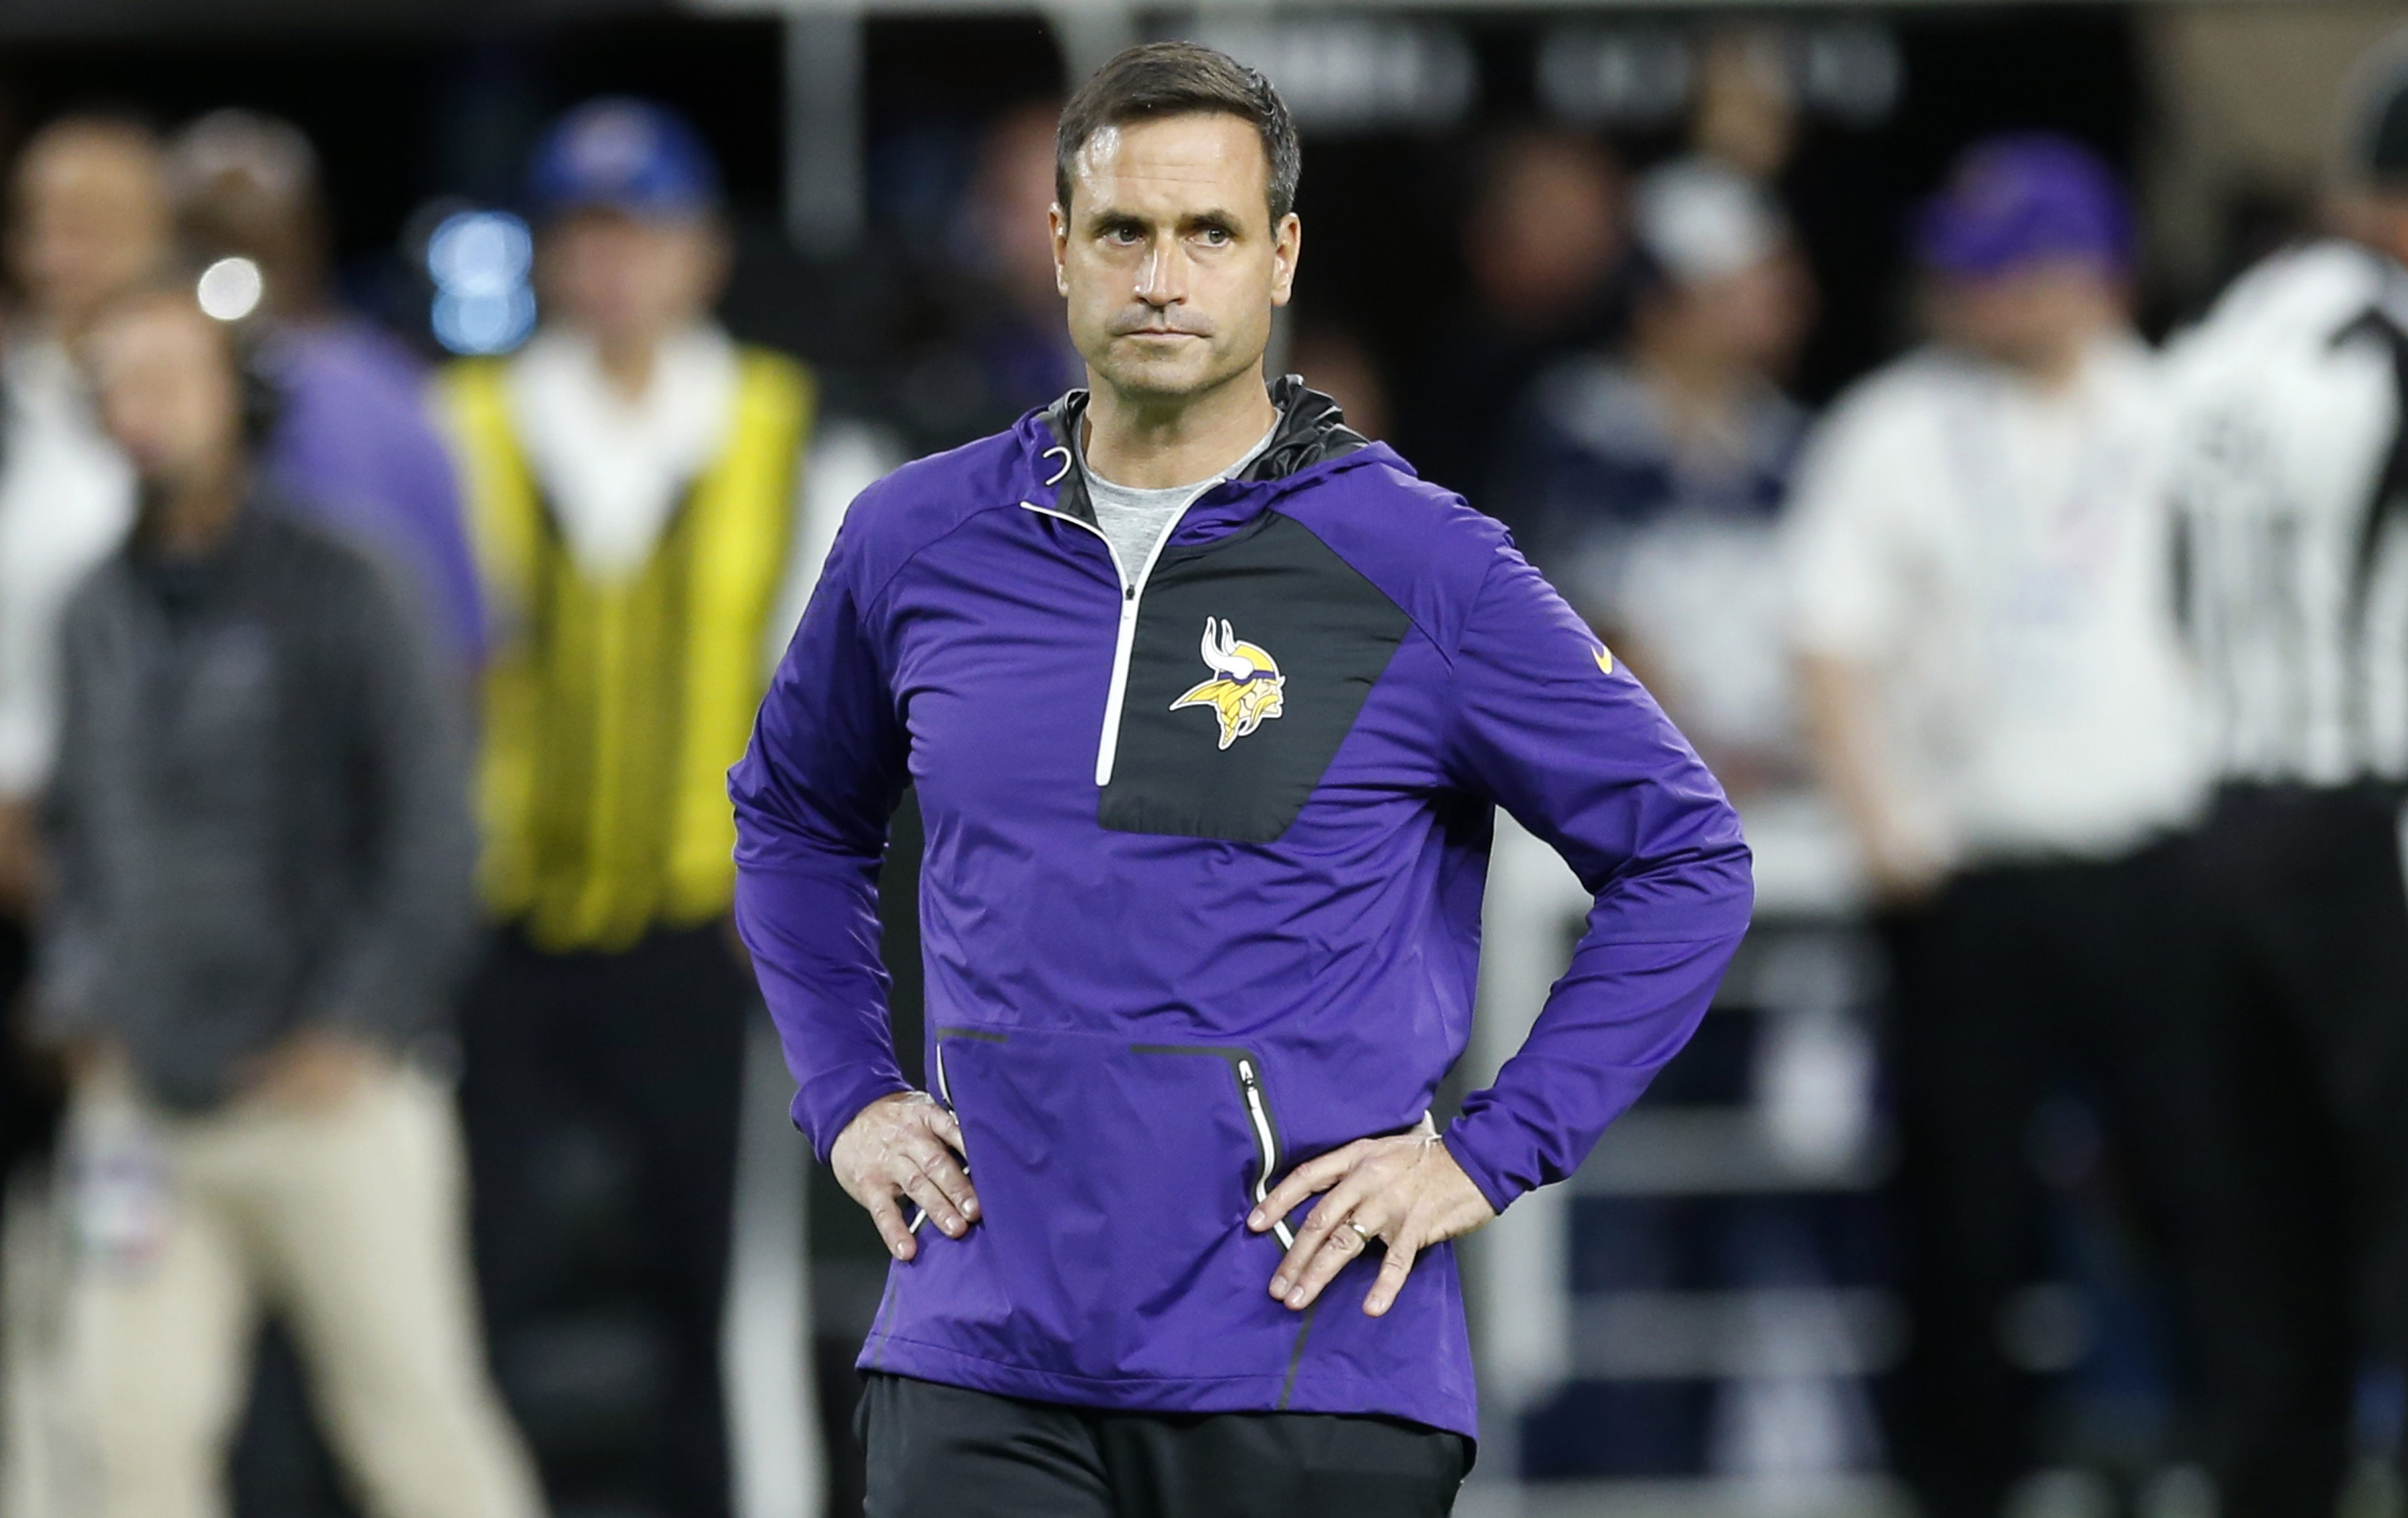 Minnesota Vikings interim coach Mike Priefer walks on the field before the team's NFL football game against Dallas Cowboys on Thursday, Dec. 1, 2016, in Minneapolis. Vikings coach Mike Zimmer missed the game following emergency surgery to repair a detache